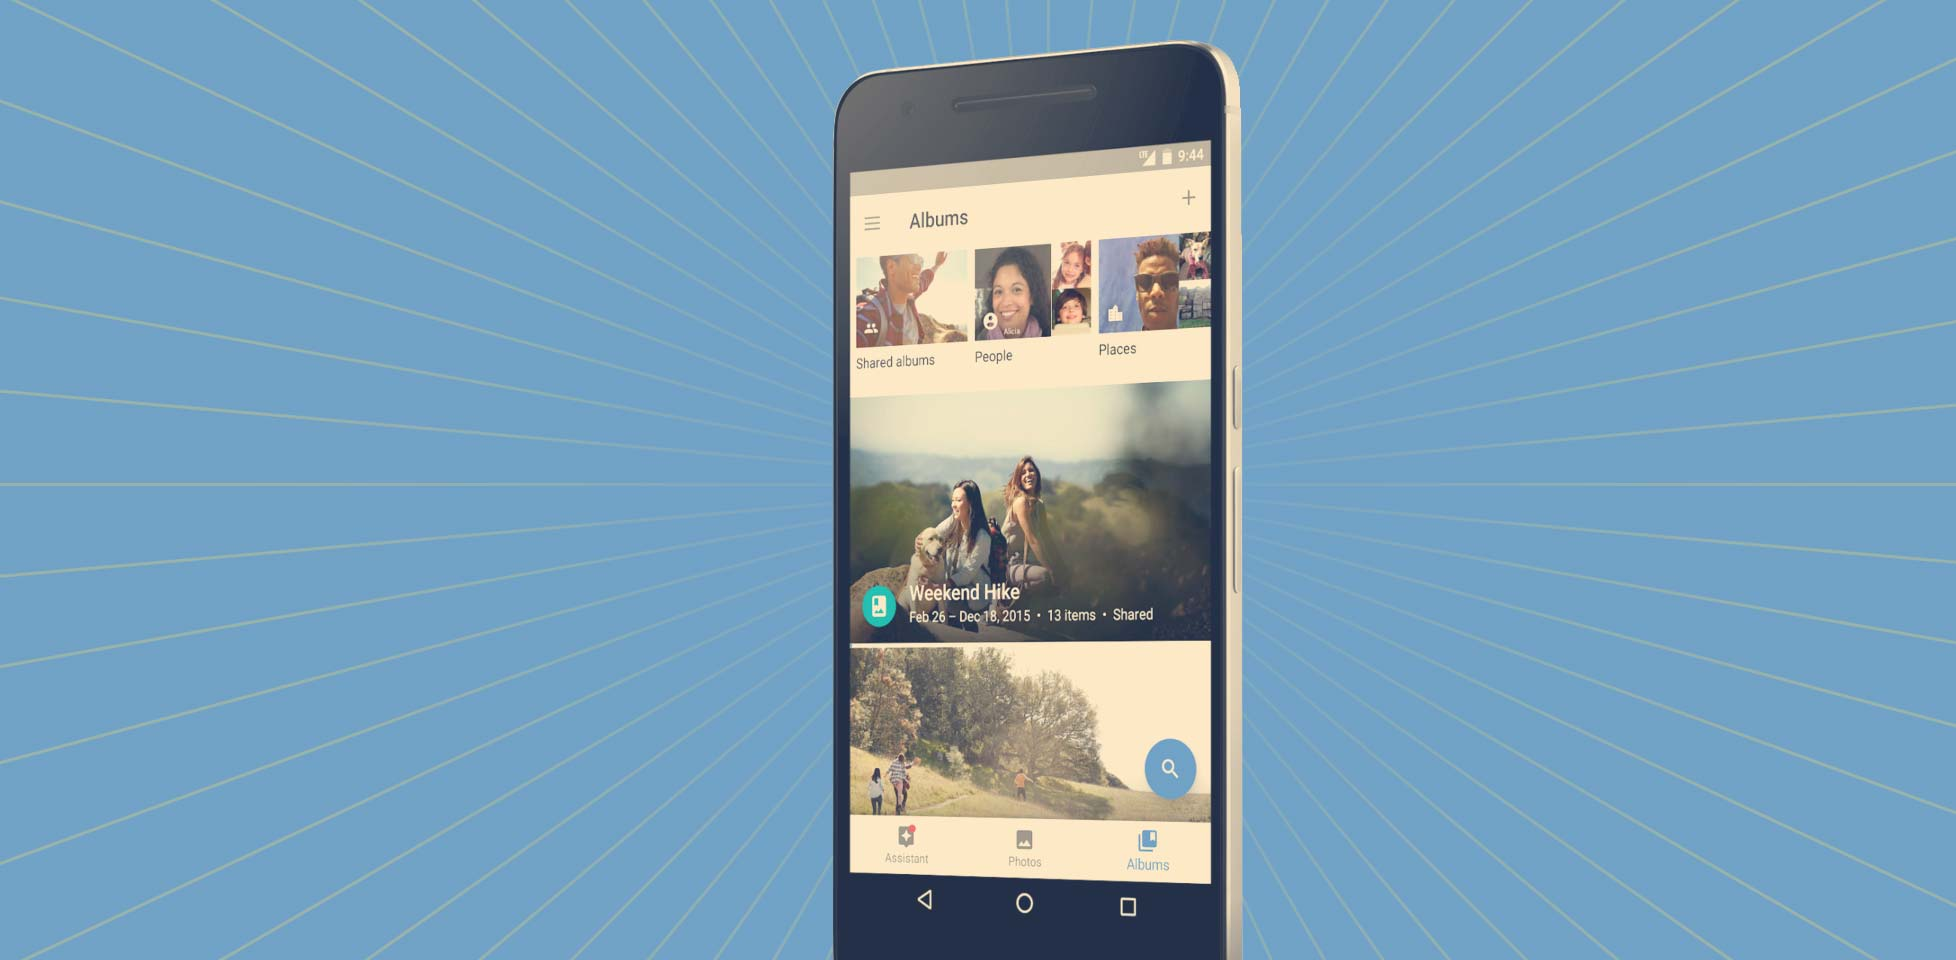 Google Photos releases a major update